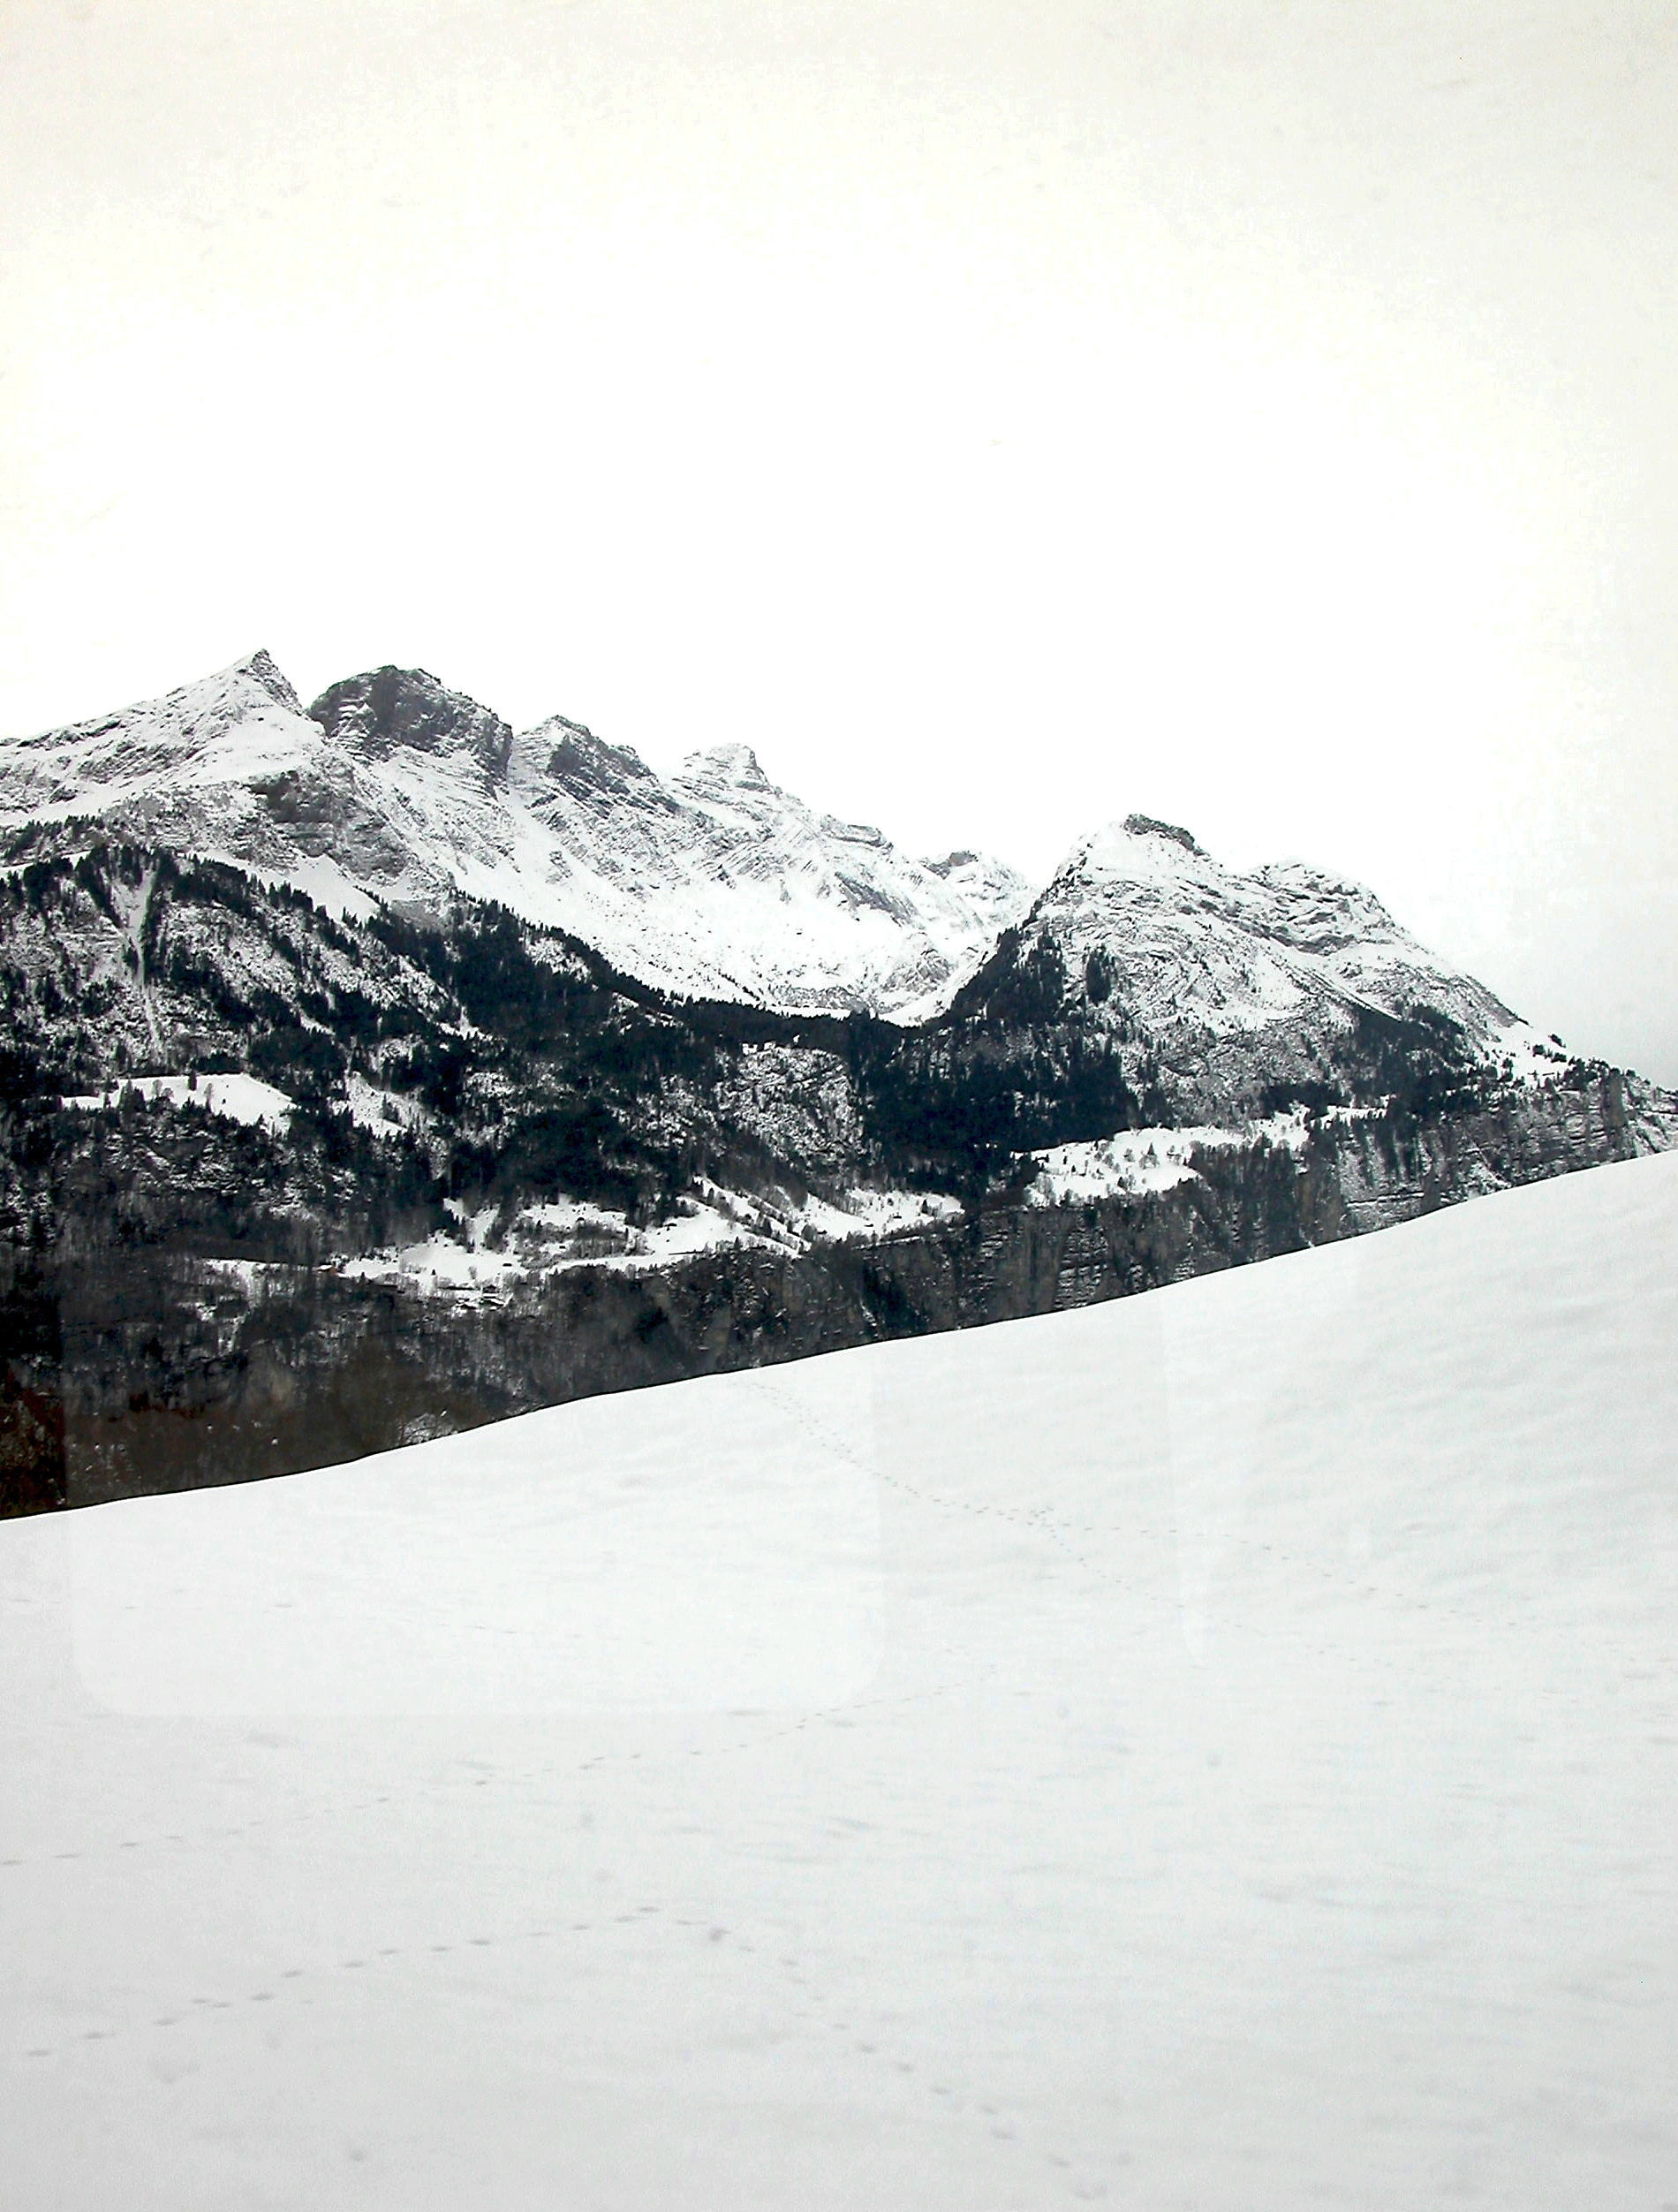 Grindelwald to Interlaken